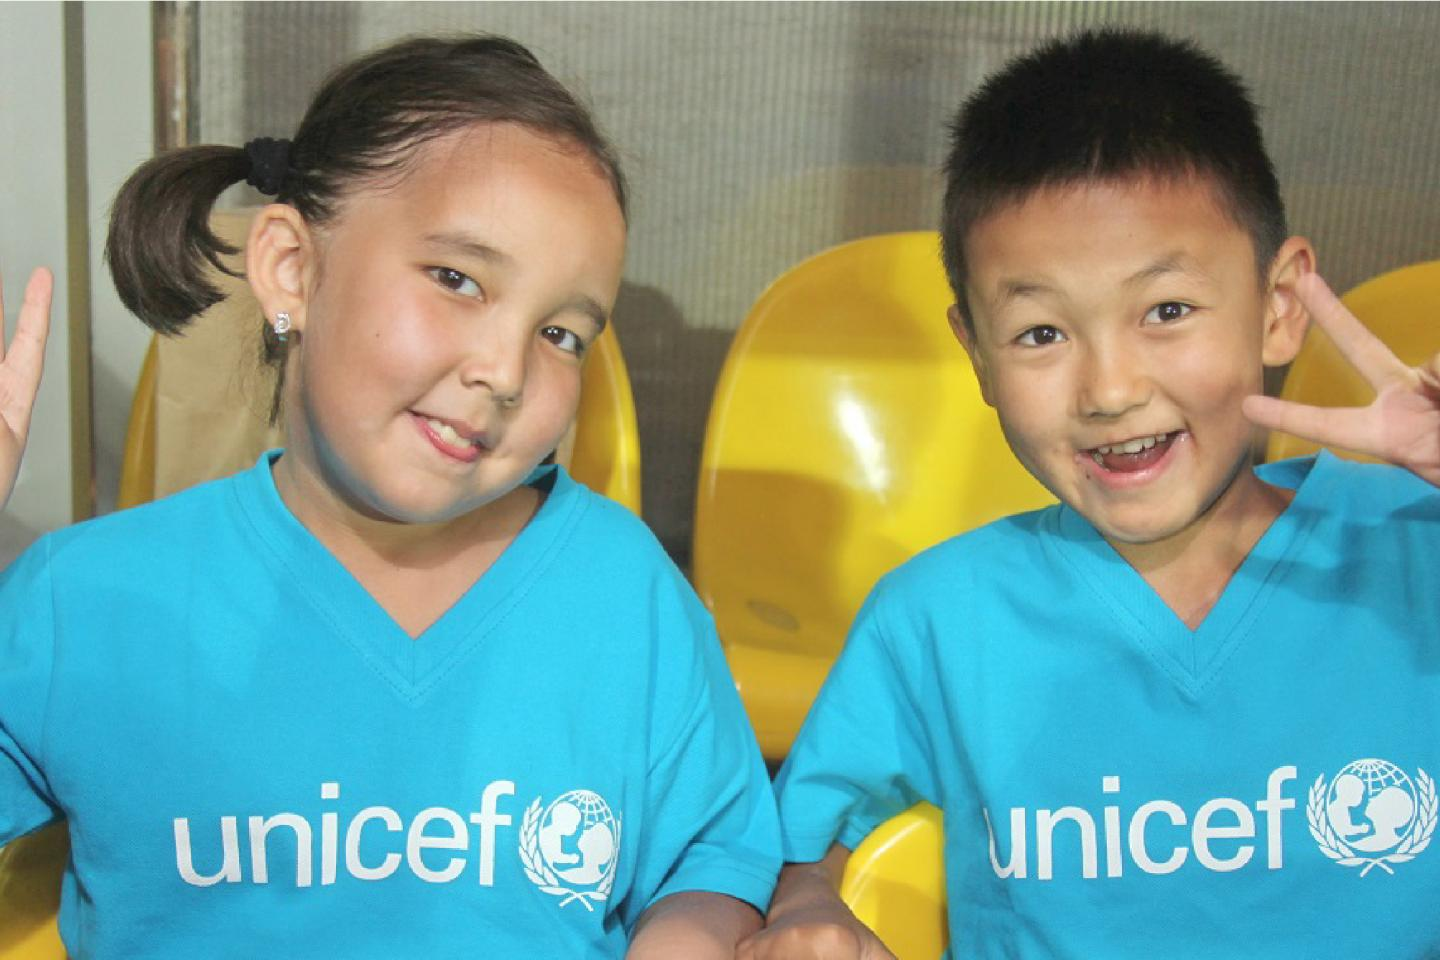 children in UNICEF t-shirts